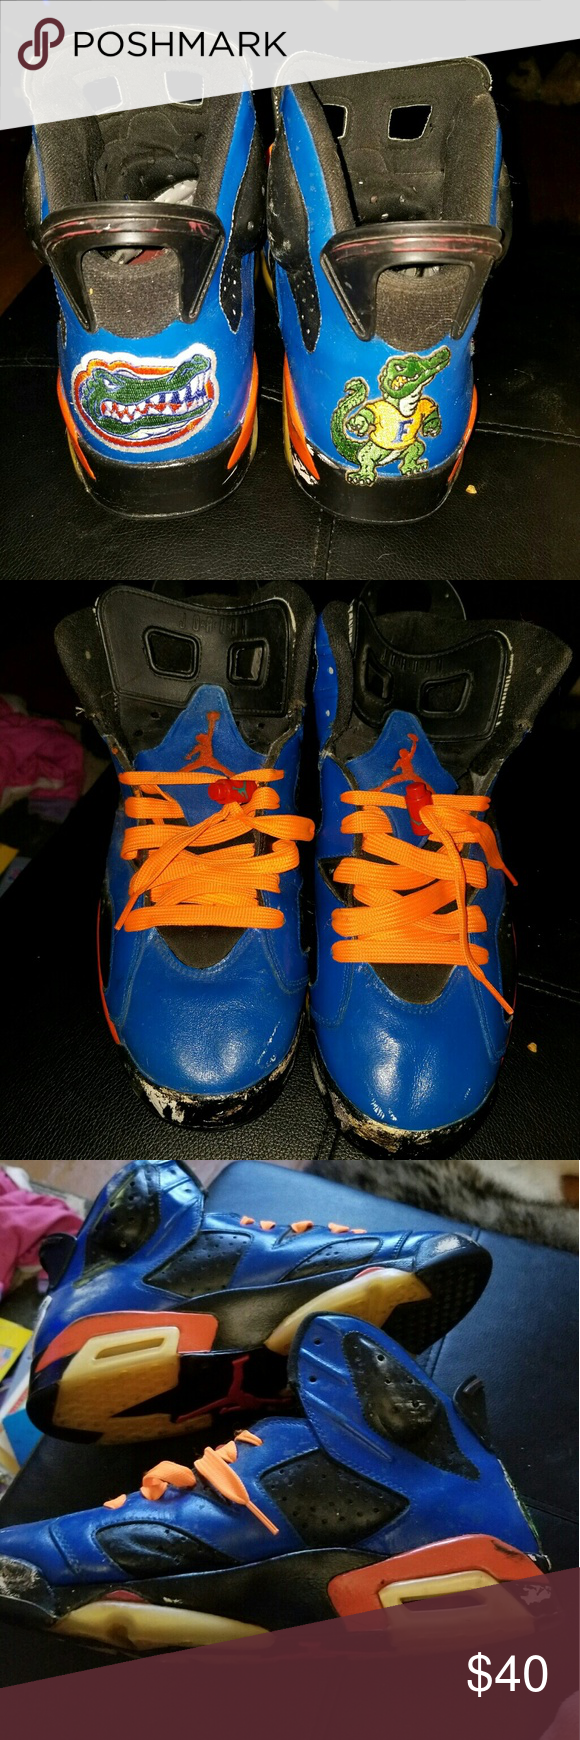 Custom FLORIDA GATOR Jordans Made Sneakers Sections Do Have White Scuff Marks Noted In Pic Hence The Price Sneaker It Self Good Shape